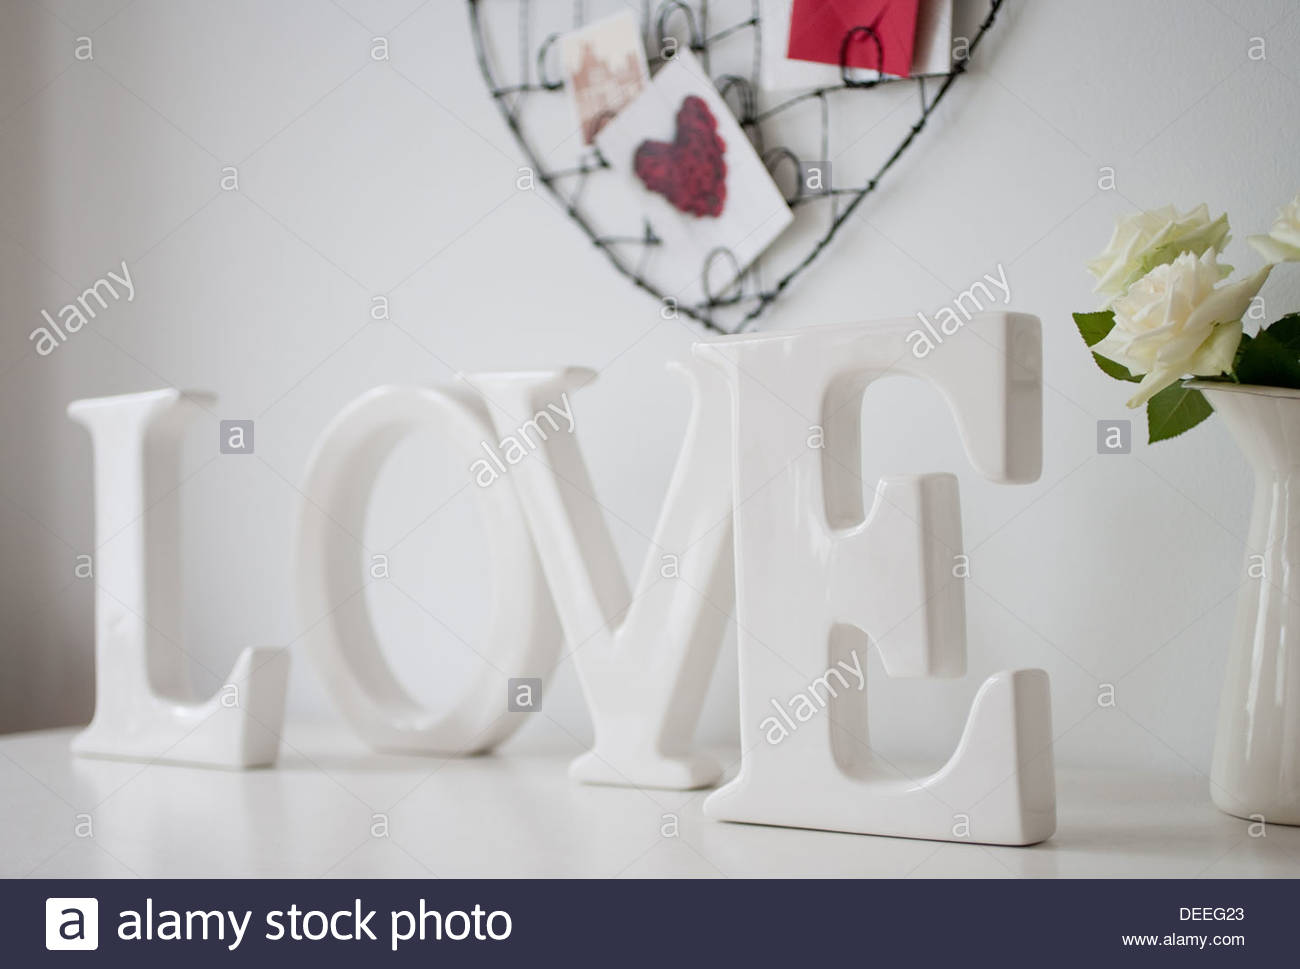 Wooden 'love' letters decoration, roses on desk - Stock Image